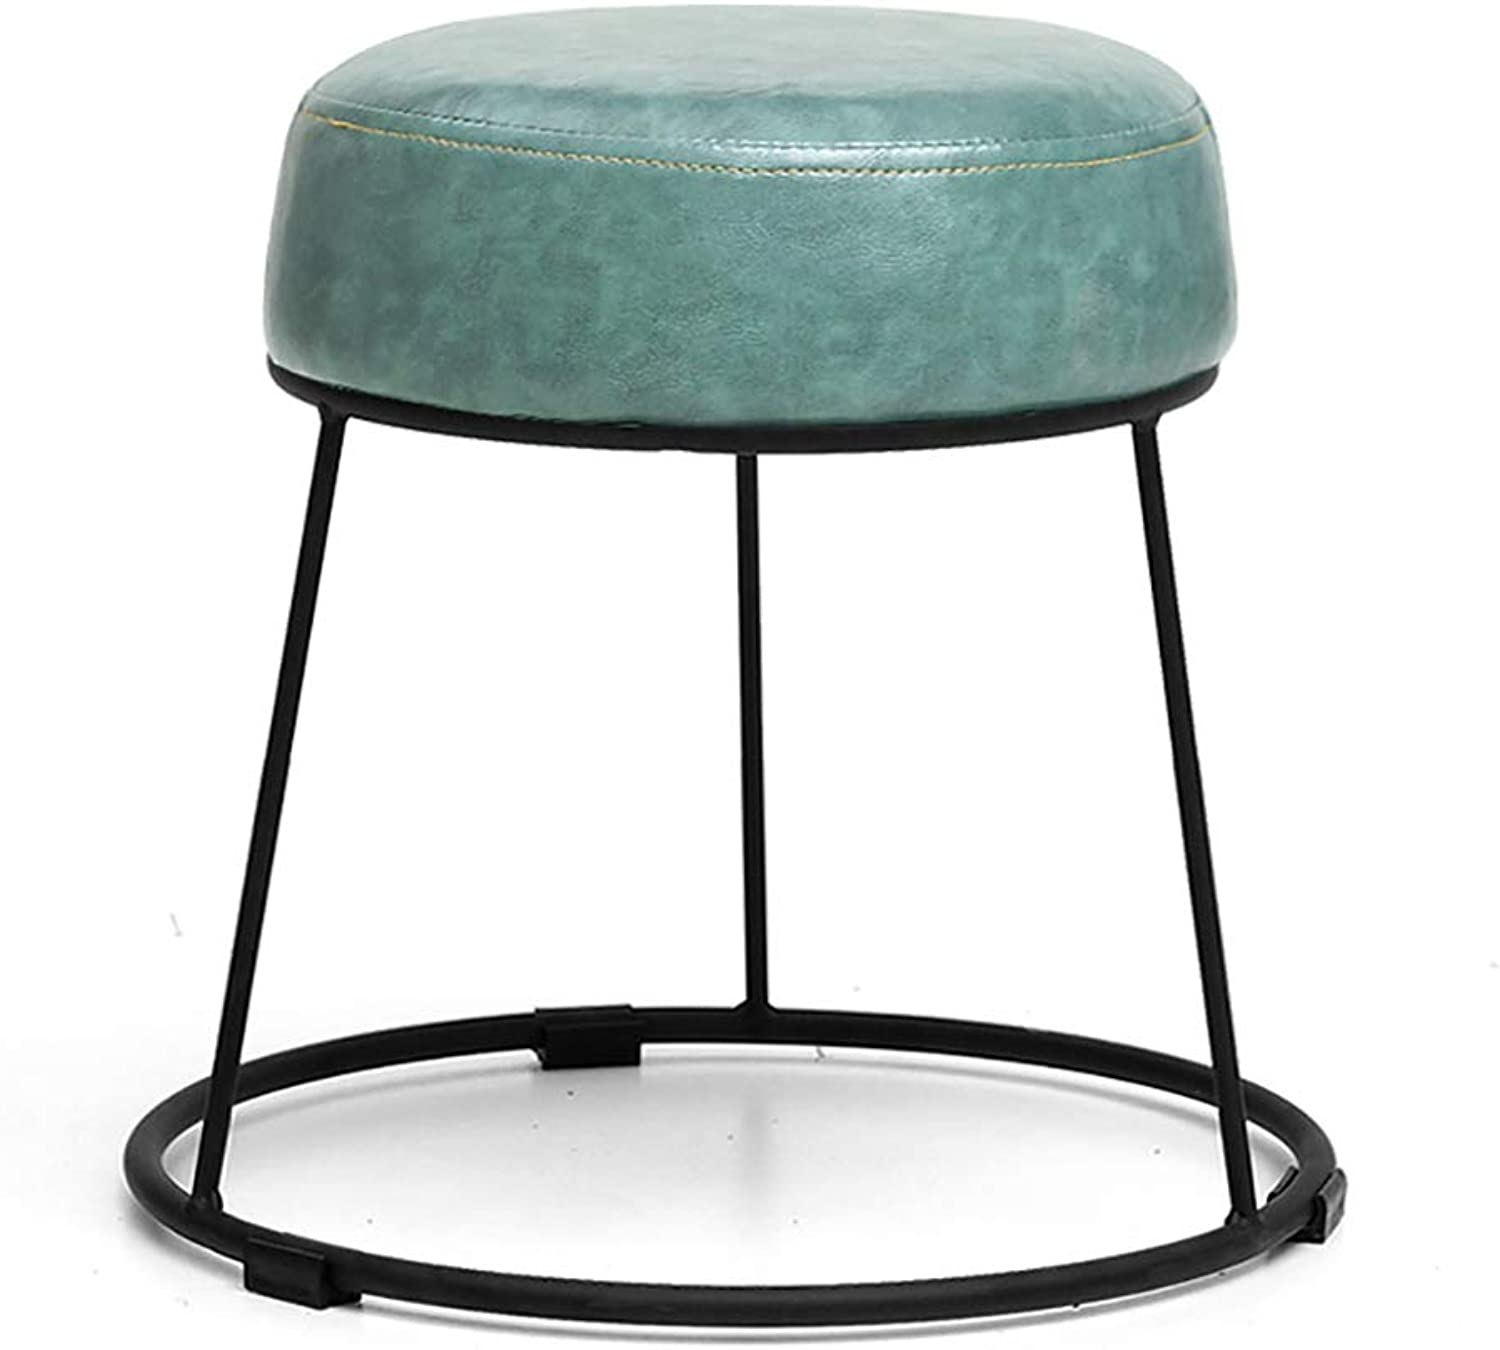 Home Stool Wrought Iron Stool Leather Art Bench Dining Table Dining Table Stool Fashion Round Stool Makeup Stool (color   B)